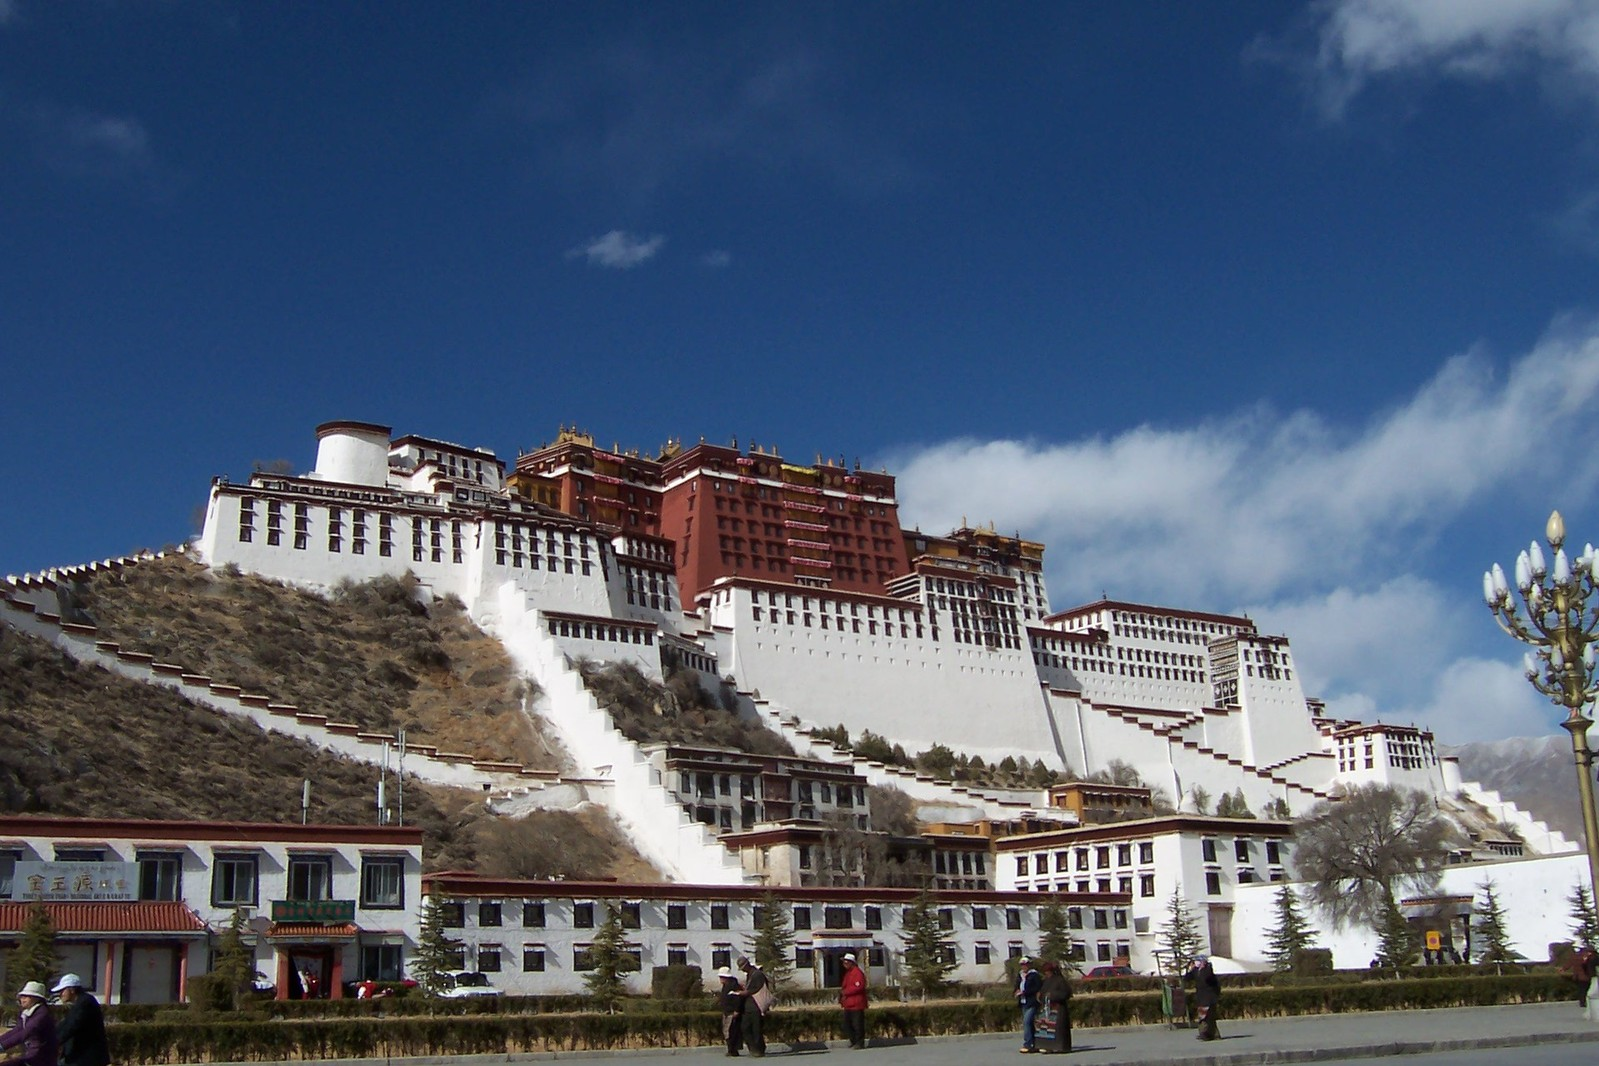 Potala Palace in Lhasa, Tibet seen from a distance